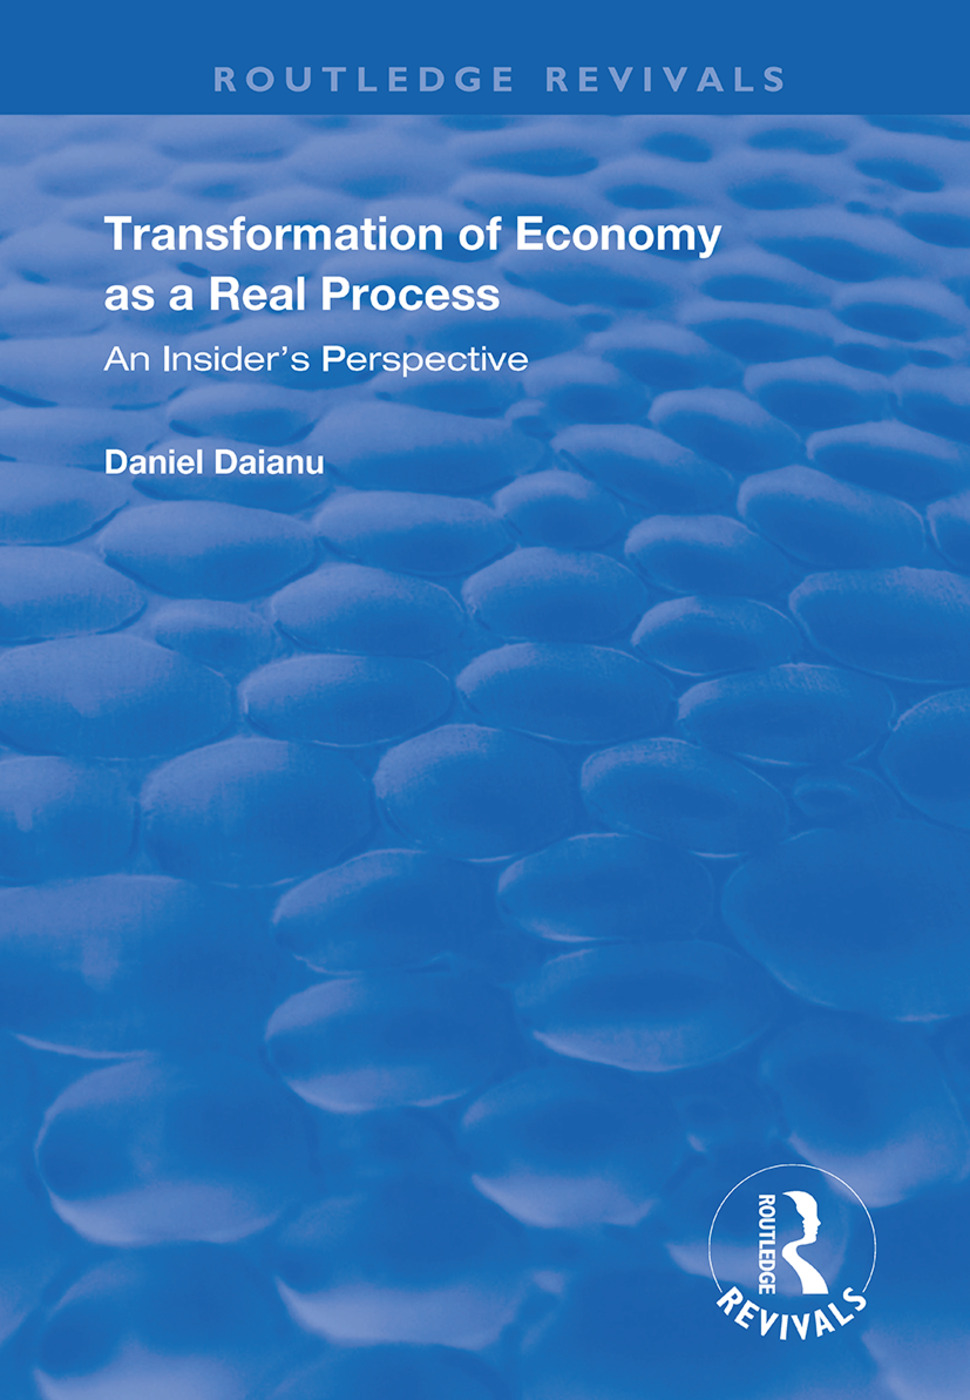 Transformation of Economy as a Real Process